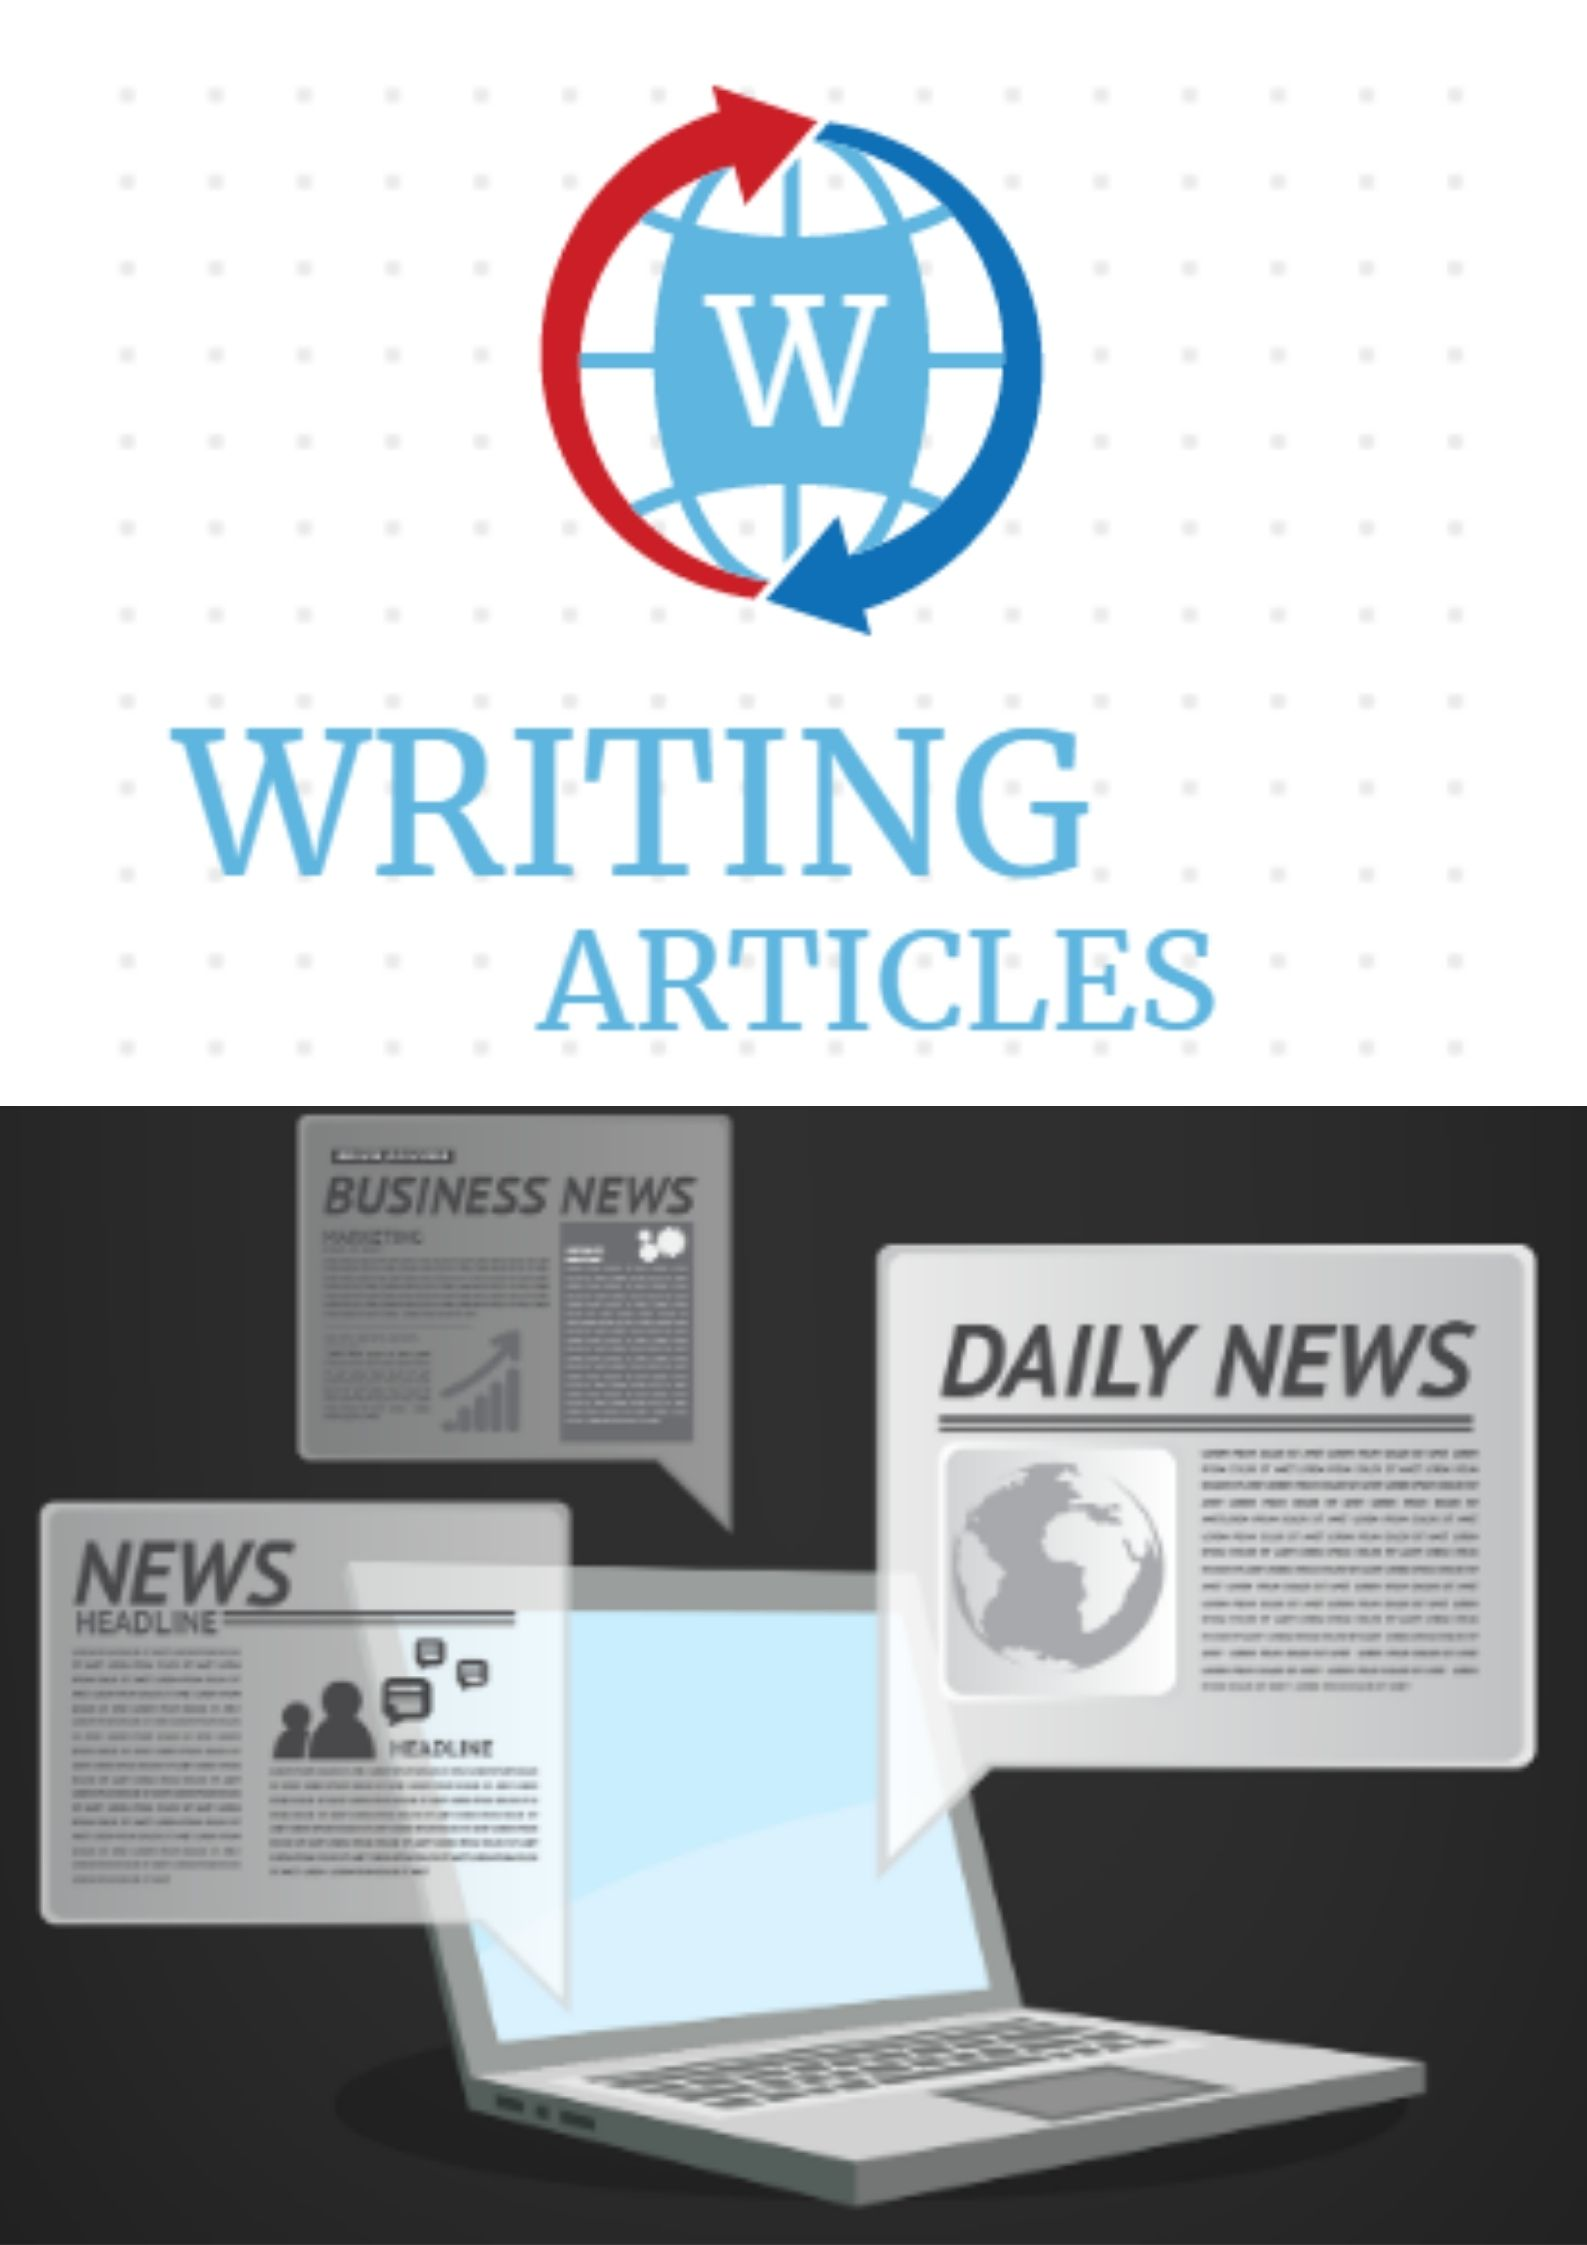 WRITING ARTICLES eBook for contant